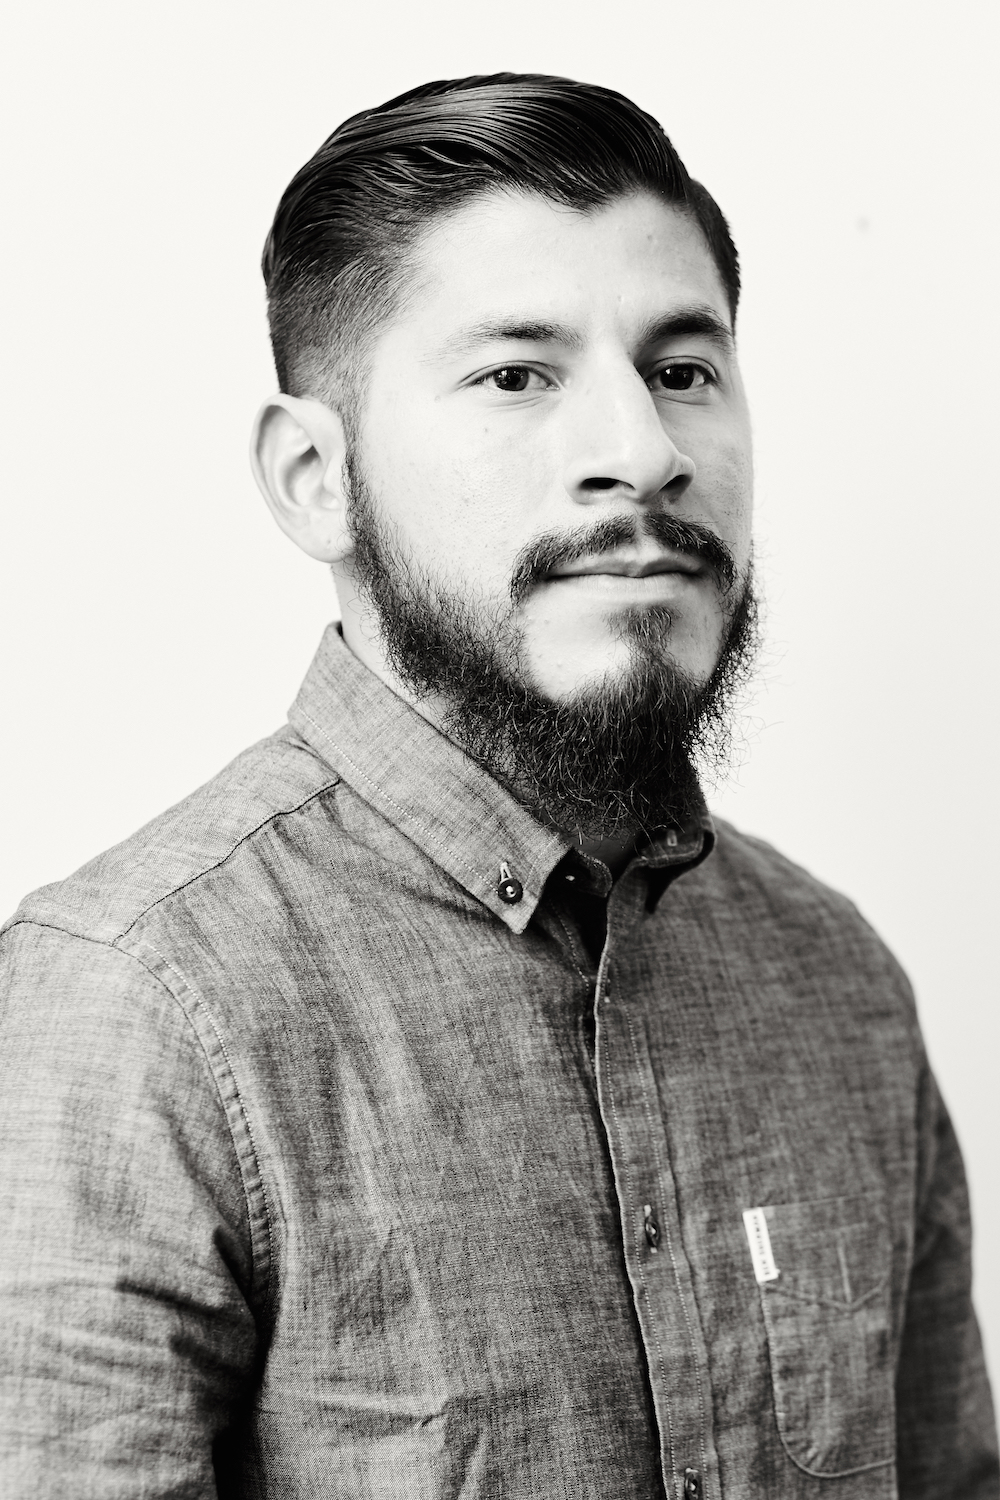 Portrait-barber-beard-black-white.jpg